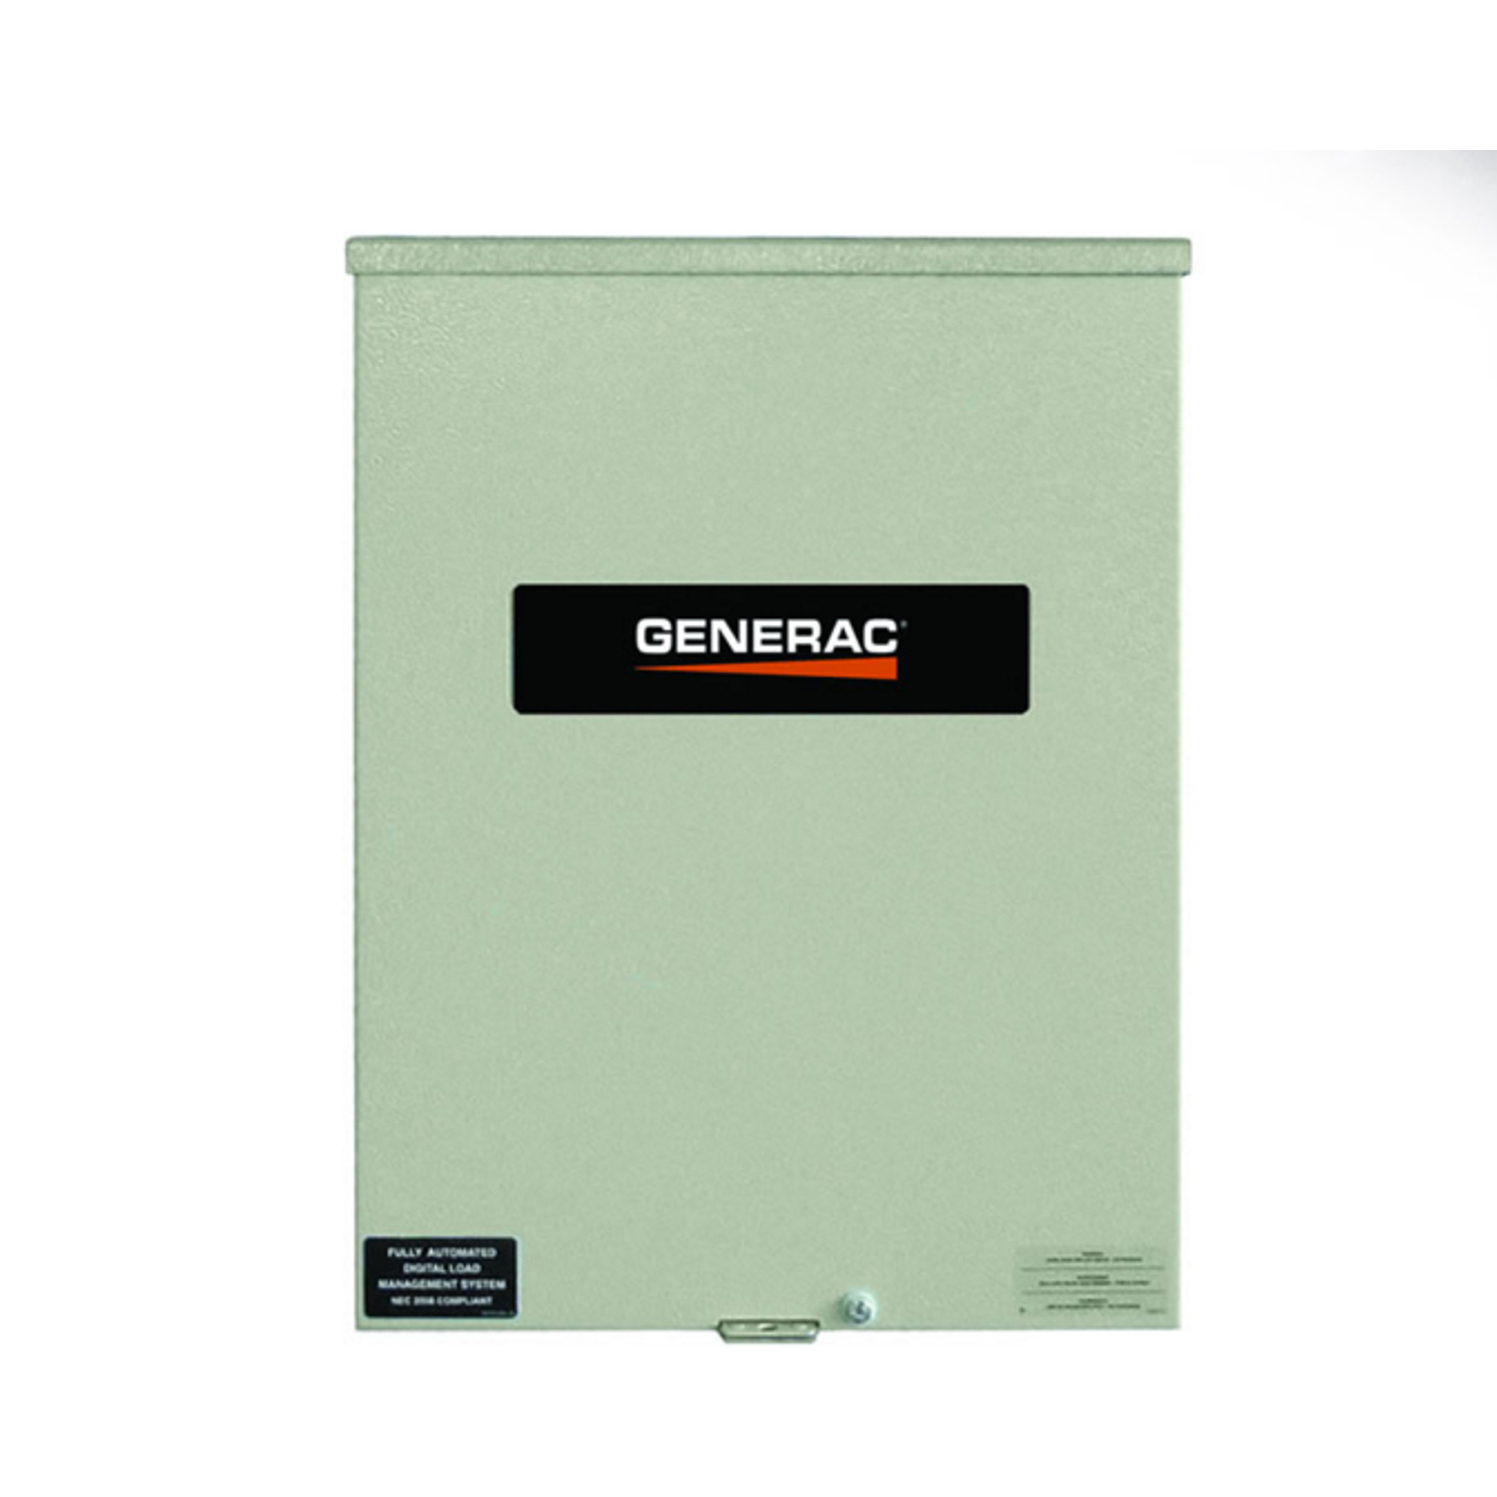 Generac Transfer Switch RTSC400A3